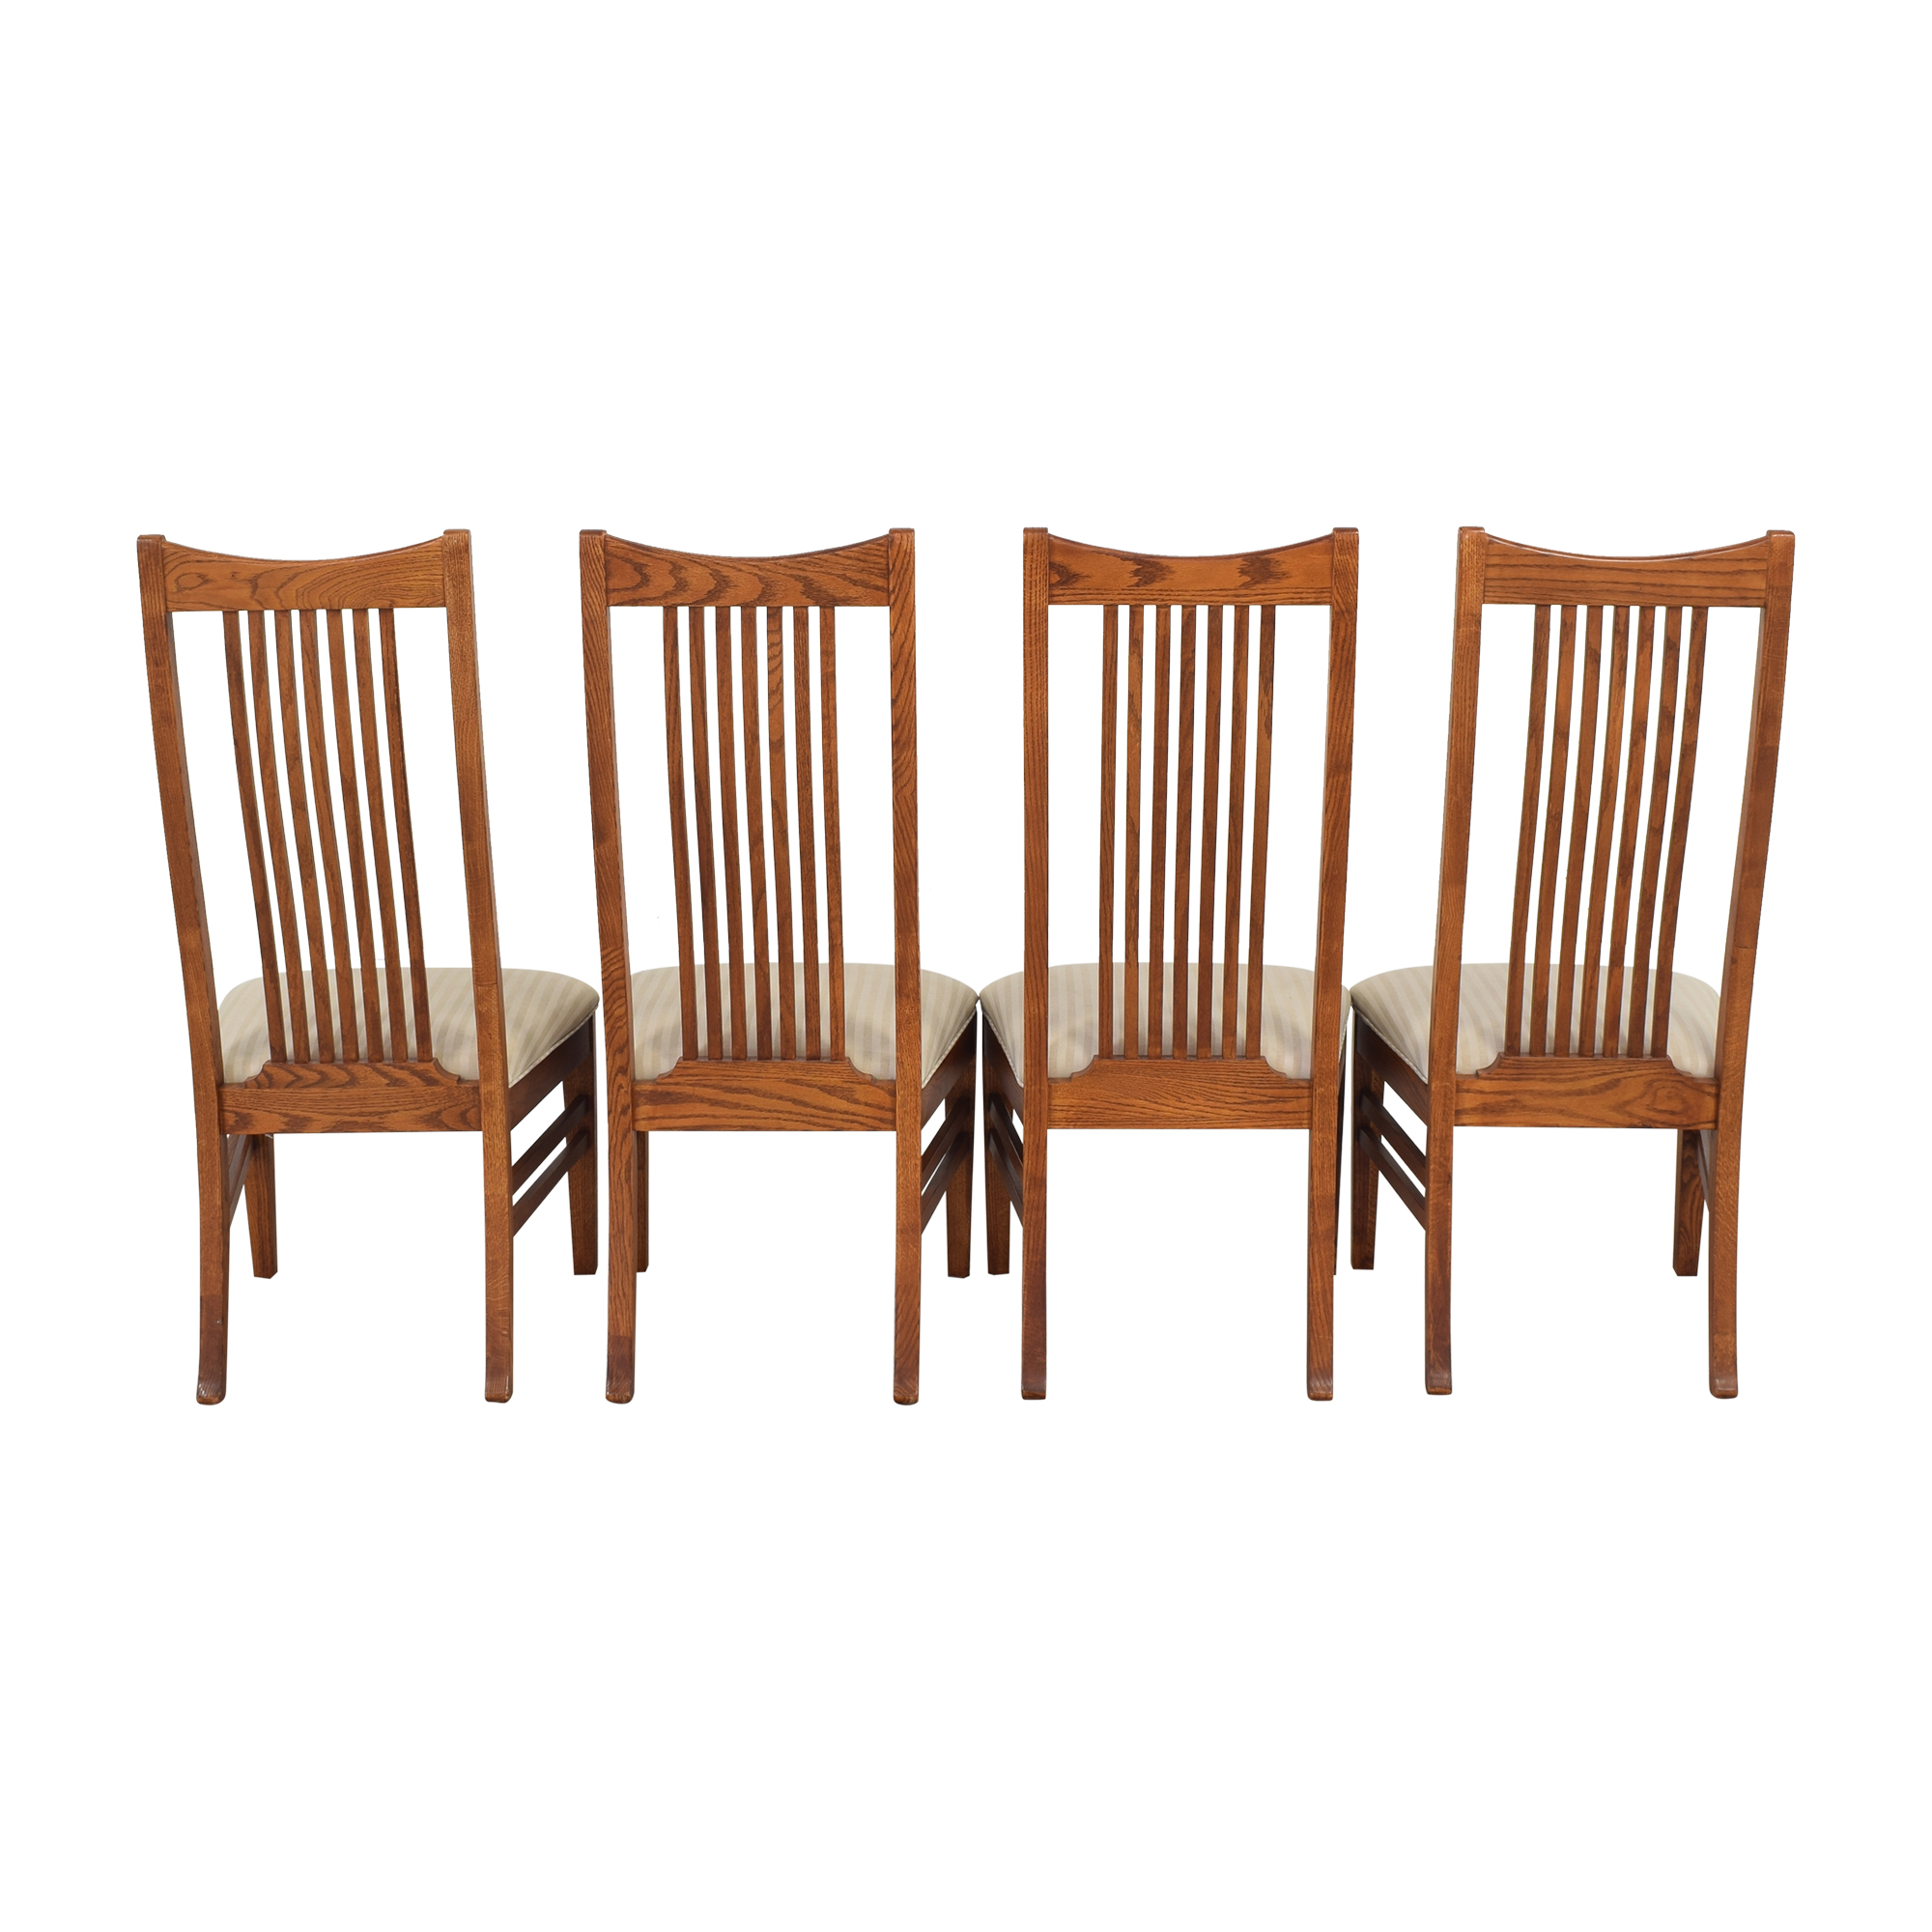 Lexington Furniture Upholstered Dining Chairs / Dining Chairs